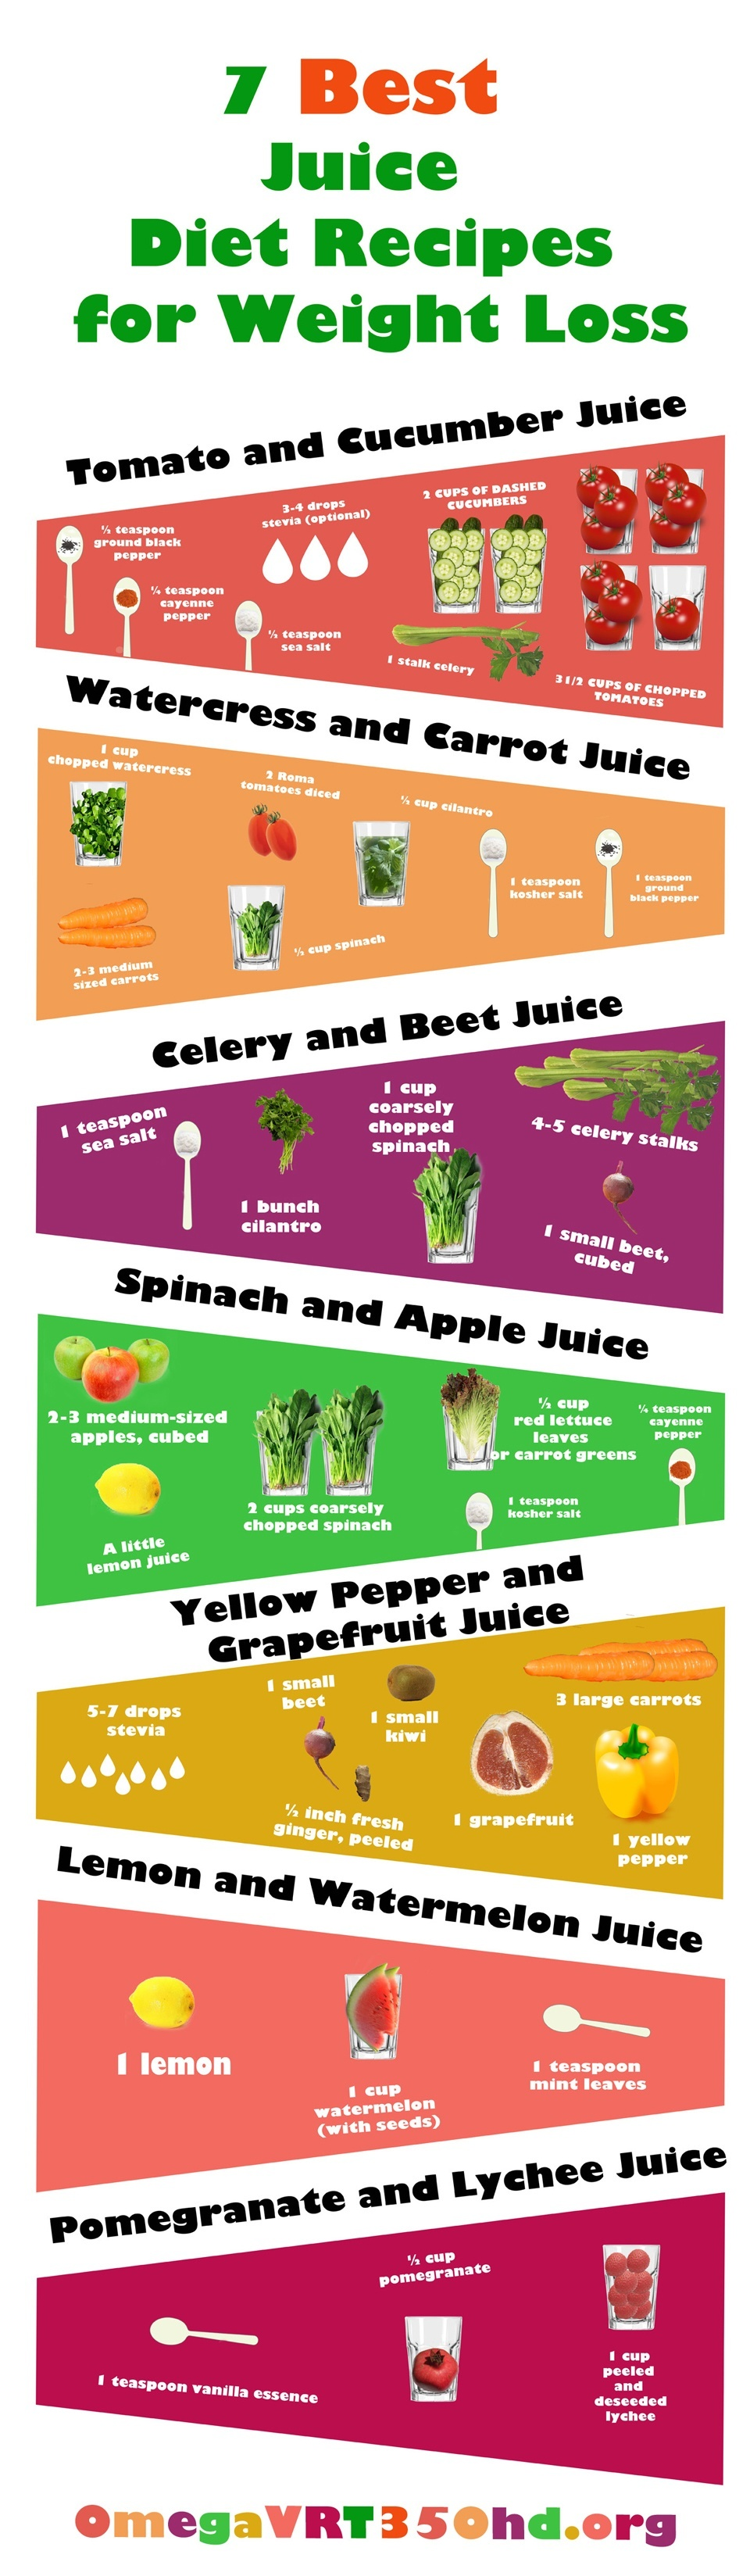 7 Simple Juicing Recipes For Weight Loss Infographic